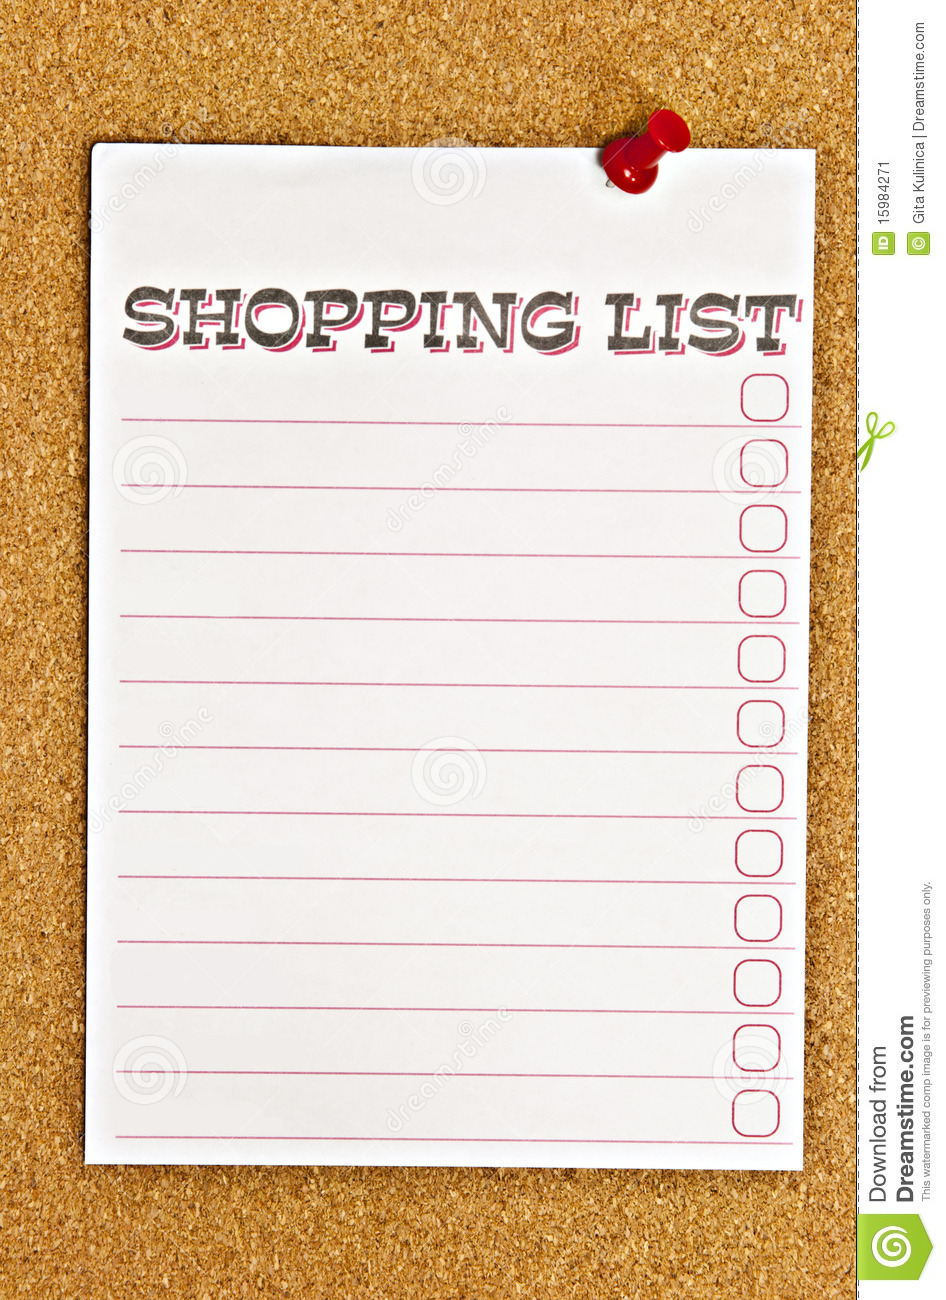 Coupon Shopping List Template – Shopping List Format